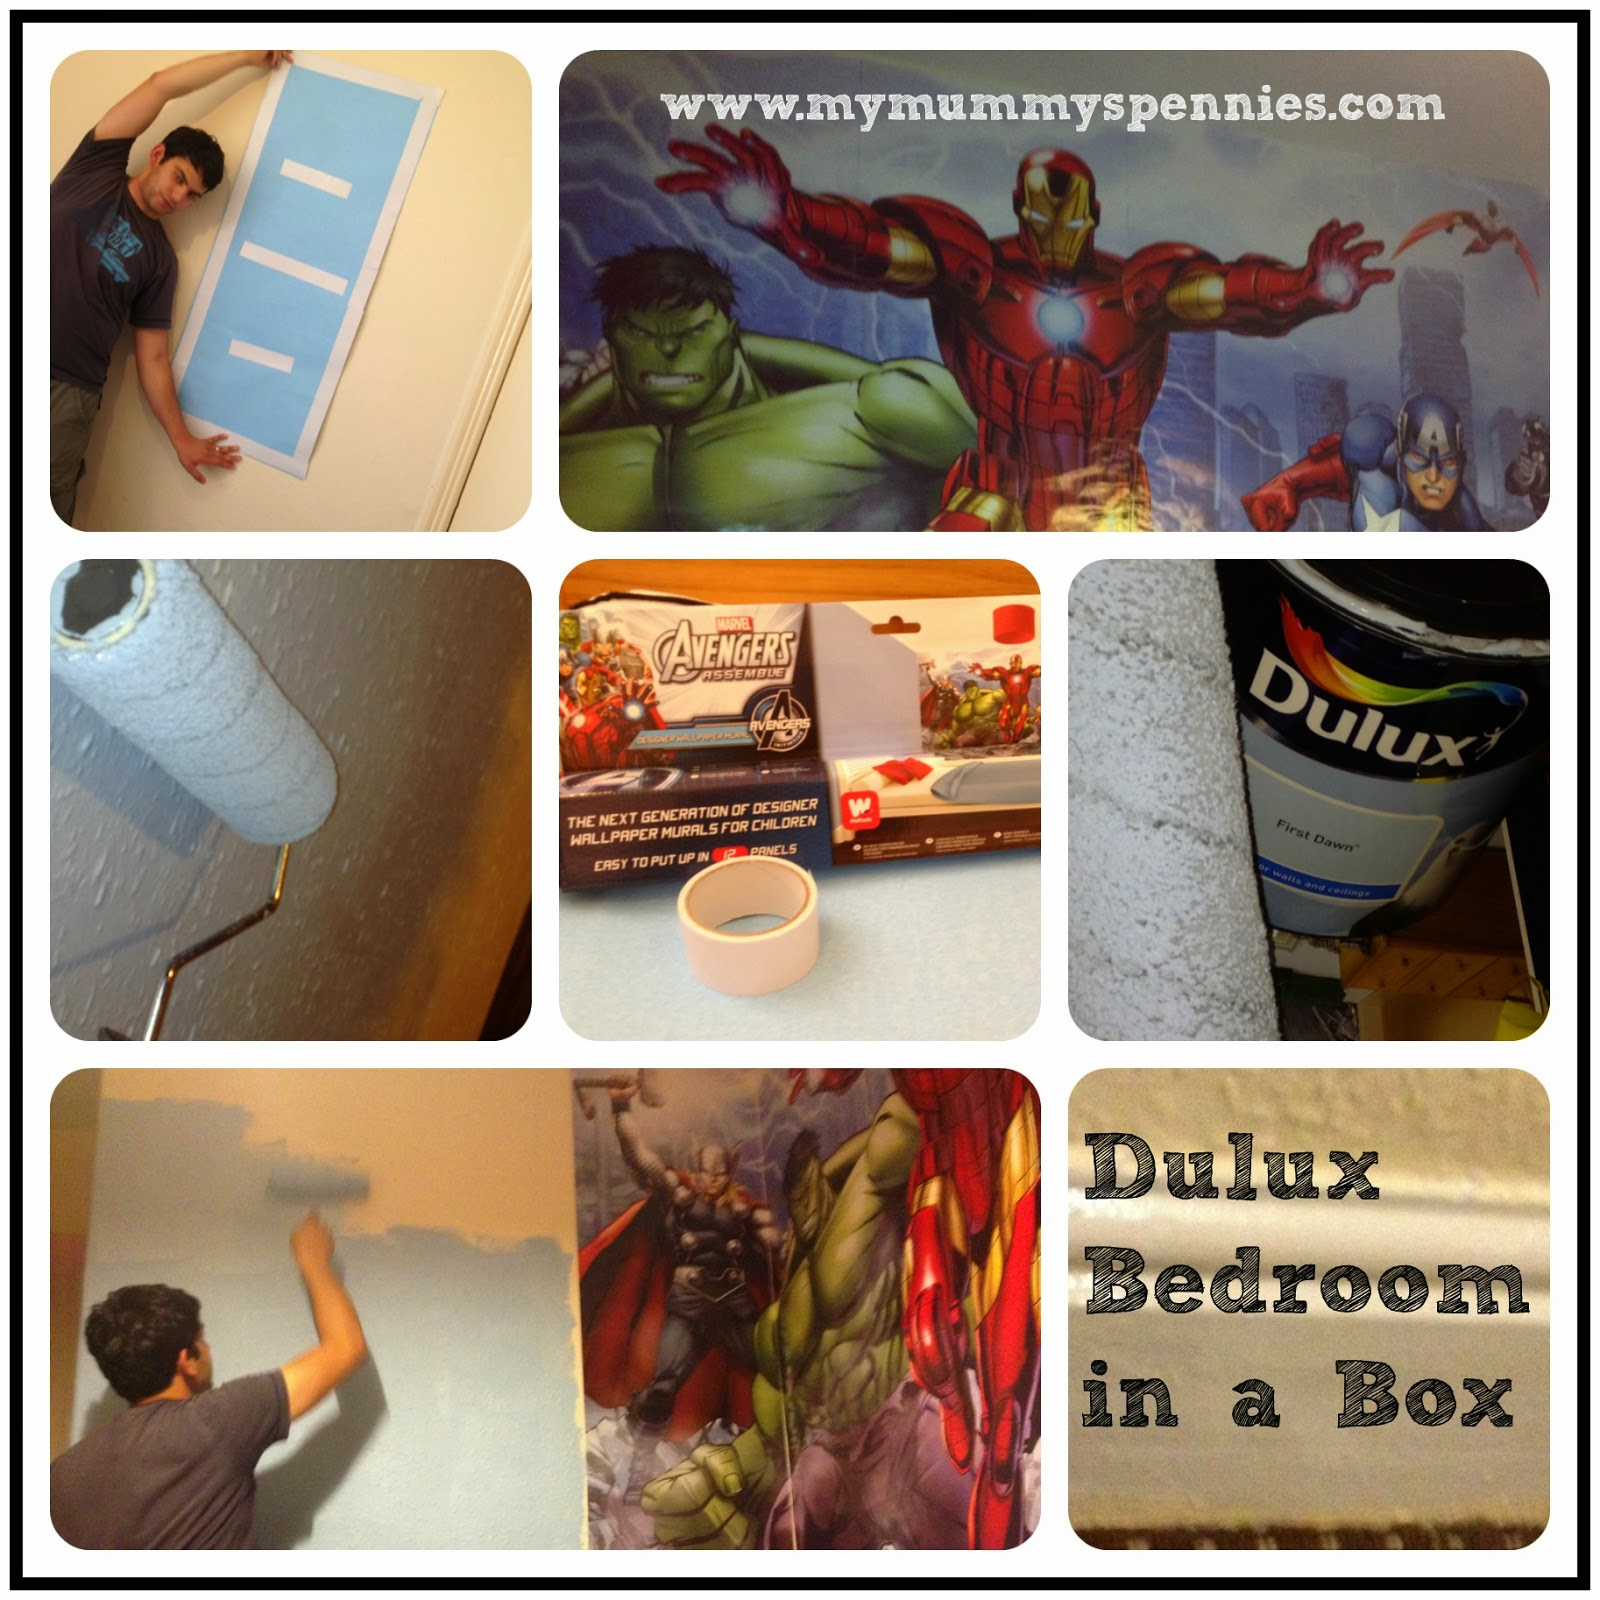 Dulux Kids Bedroom In A Box: My Mummy's Pennies: Dulux Bedroom In A Box